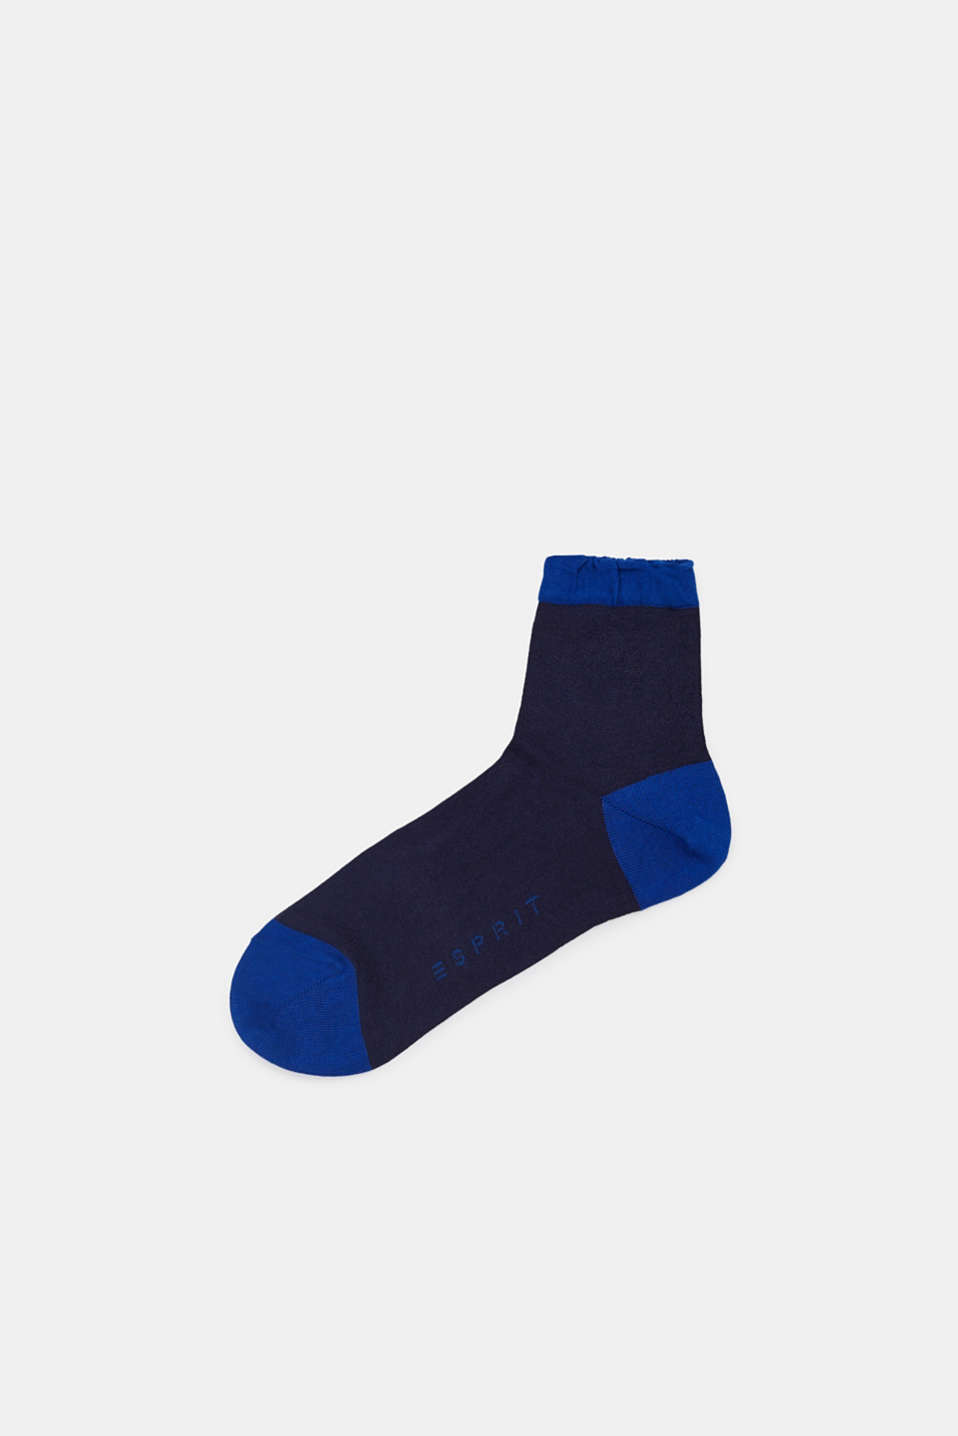 Semi-sheer socks with frilled hems, MARINE, detail image number 0